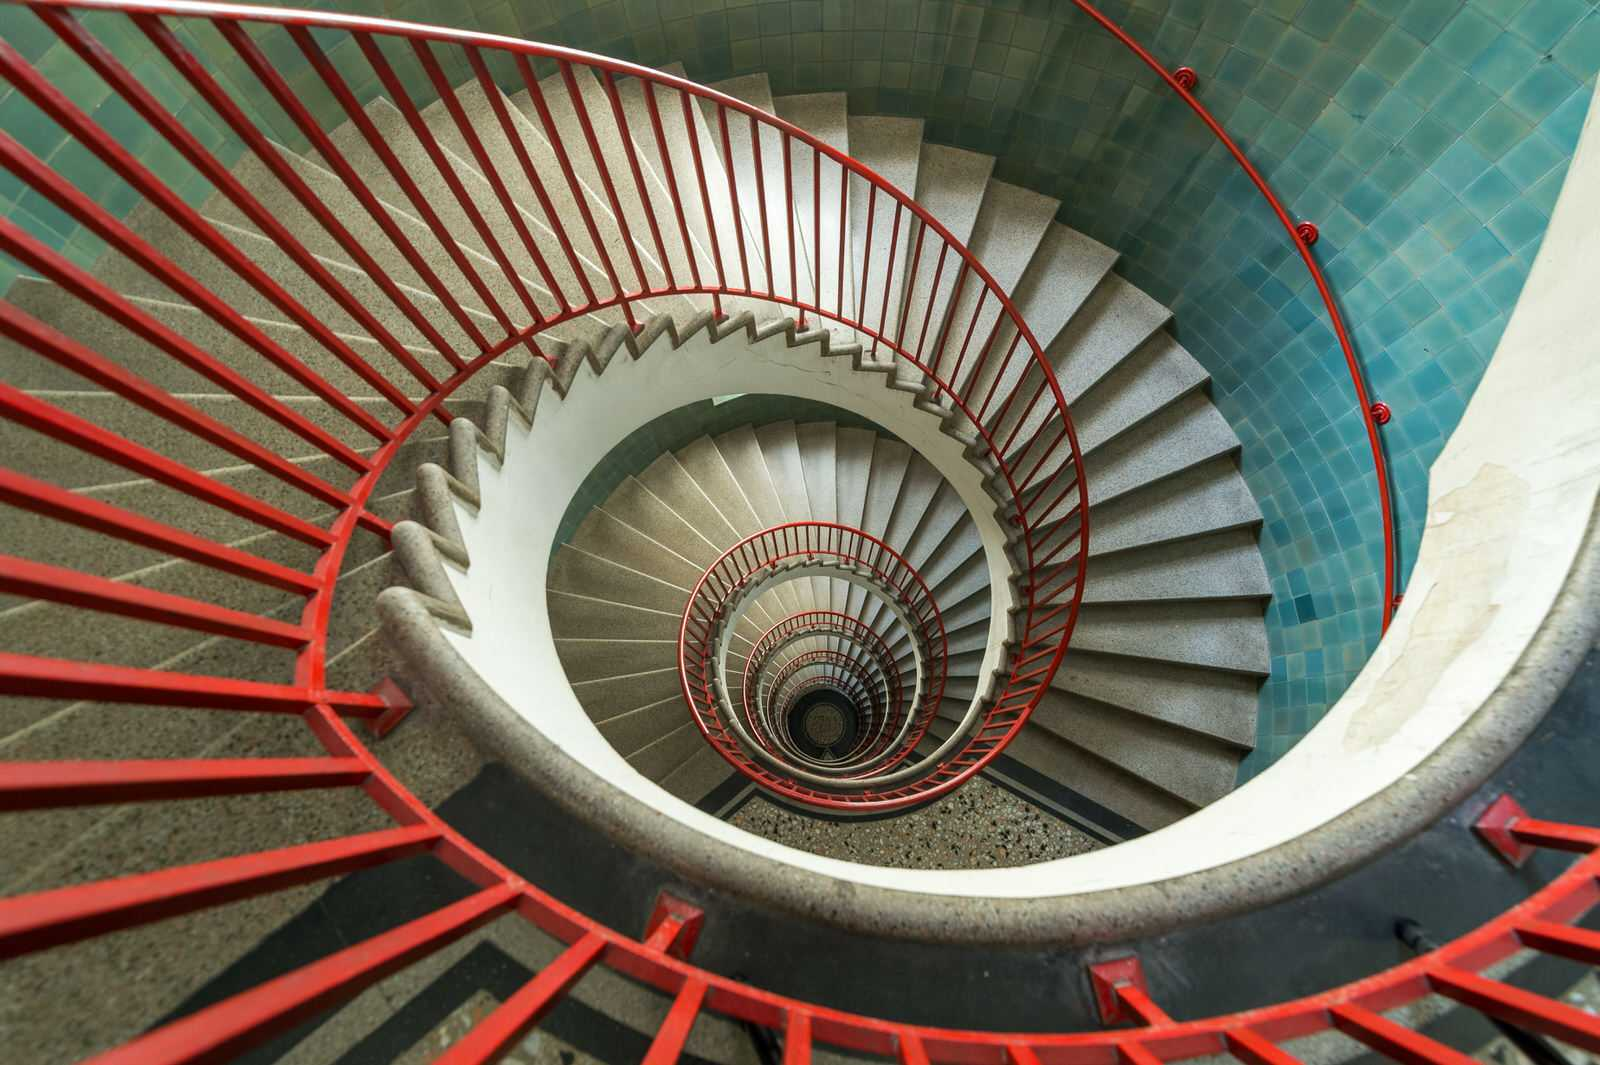 The apartment does have an elevator, but the staircase is a special experience nonetheless.